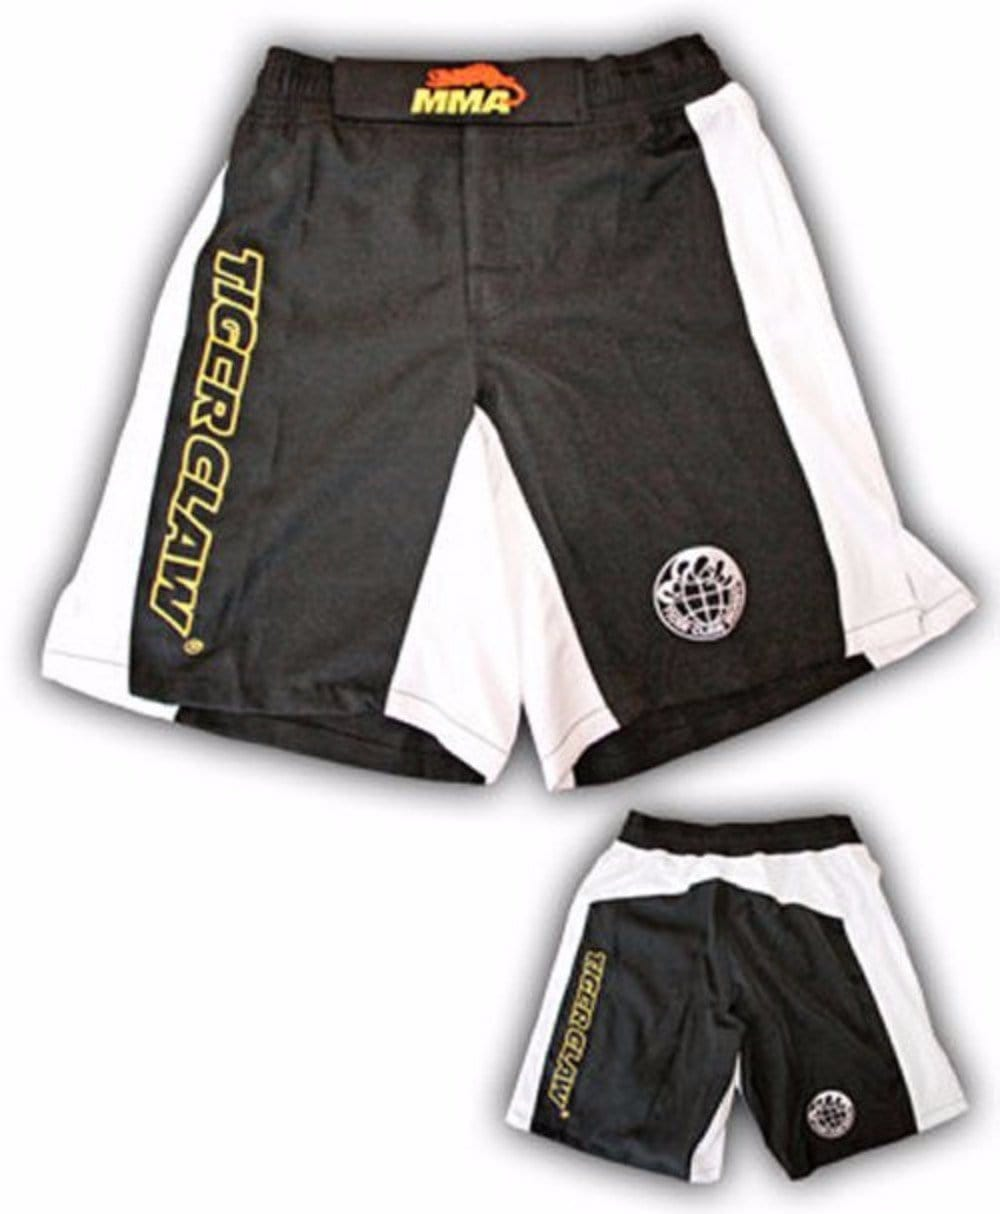 MMA Shorts by TigerClaw Black with White